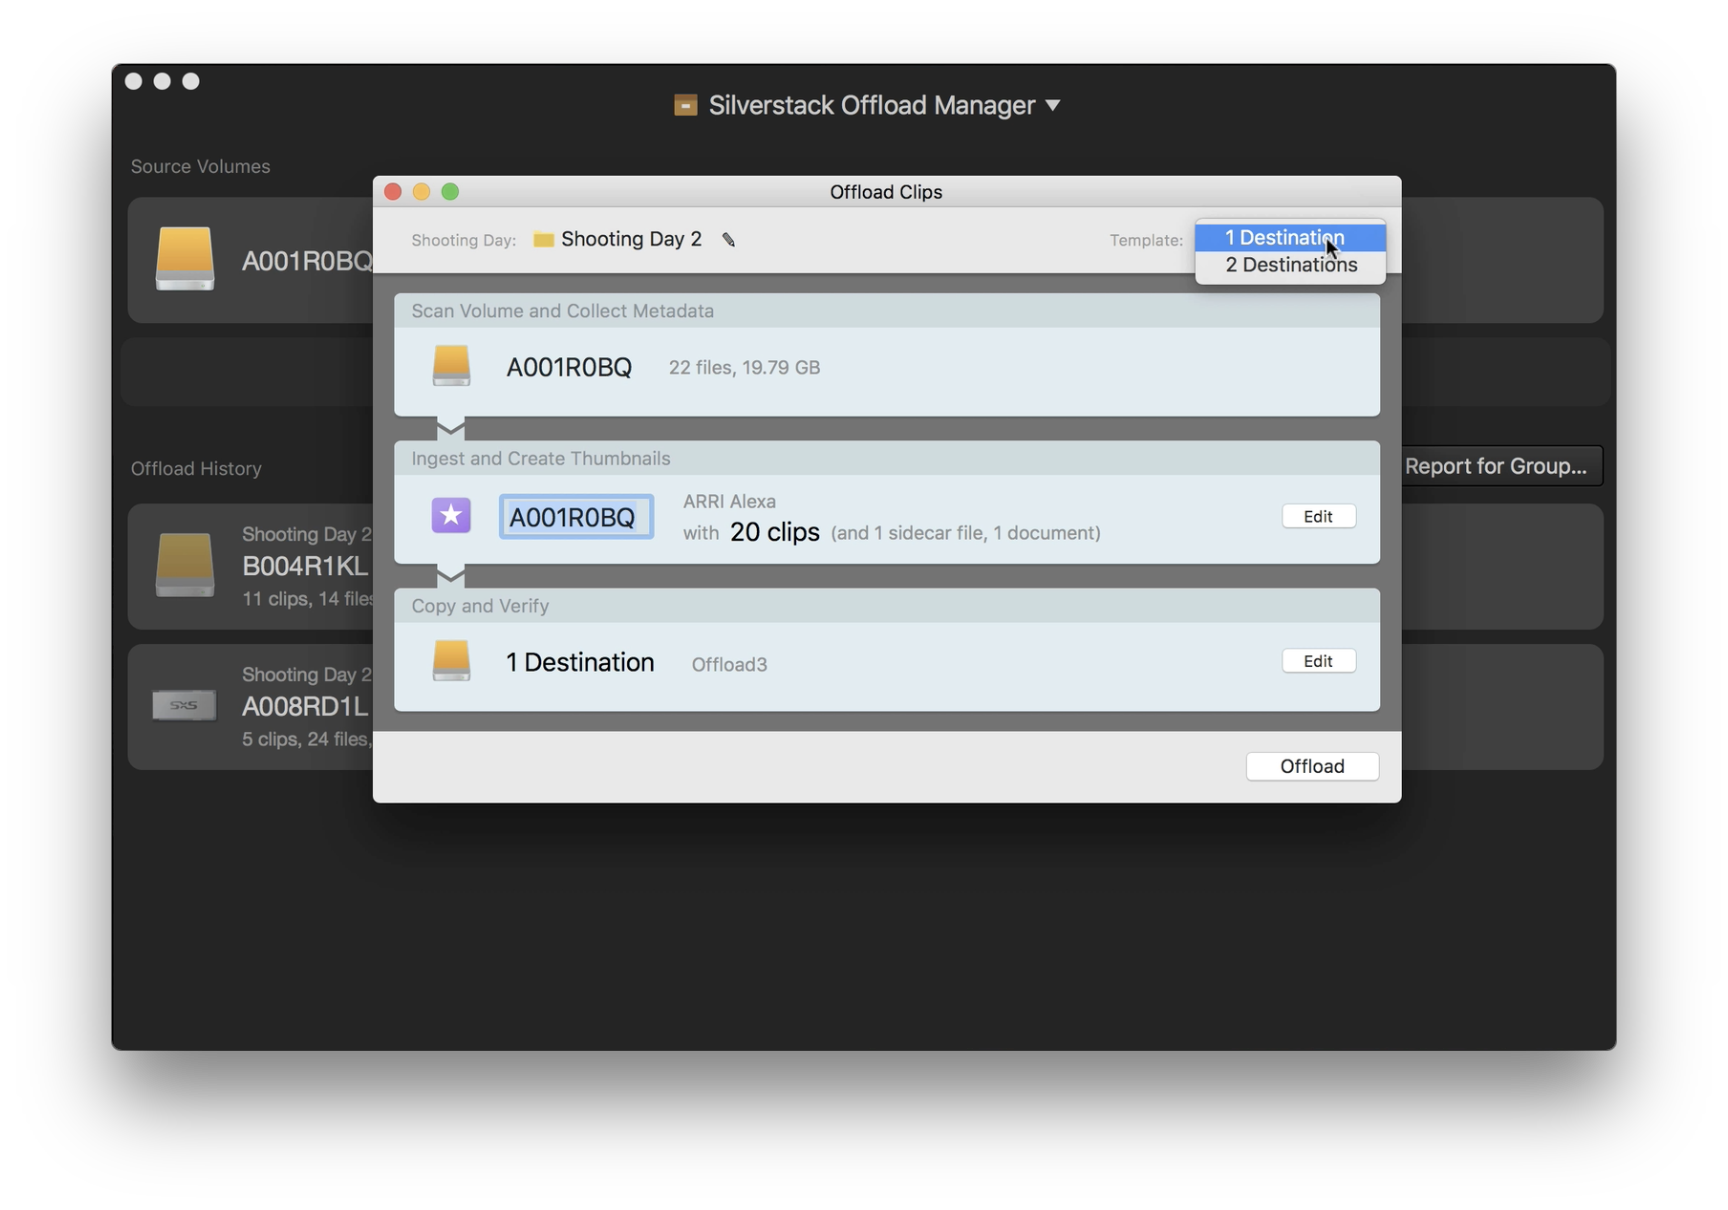 Offloading Camera Footage: How to Benefit From Working with the Silverstack Offload Manager